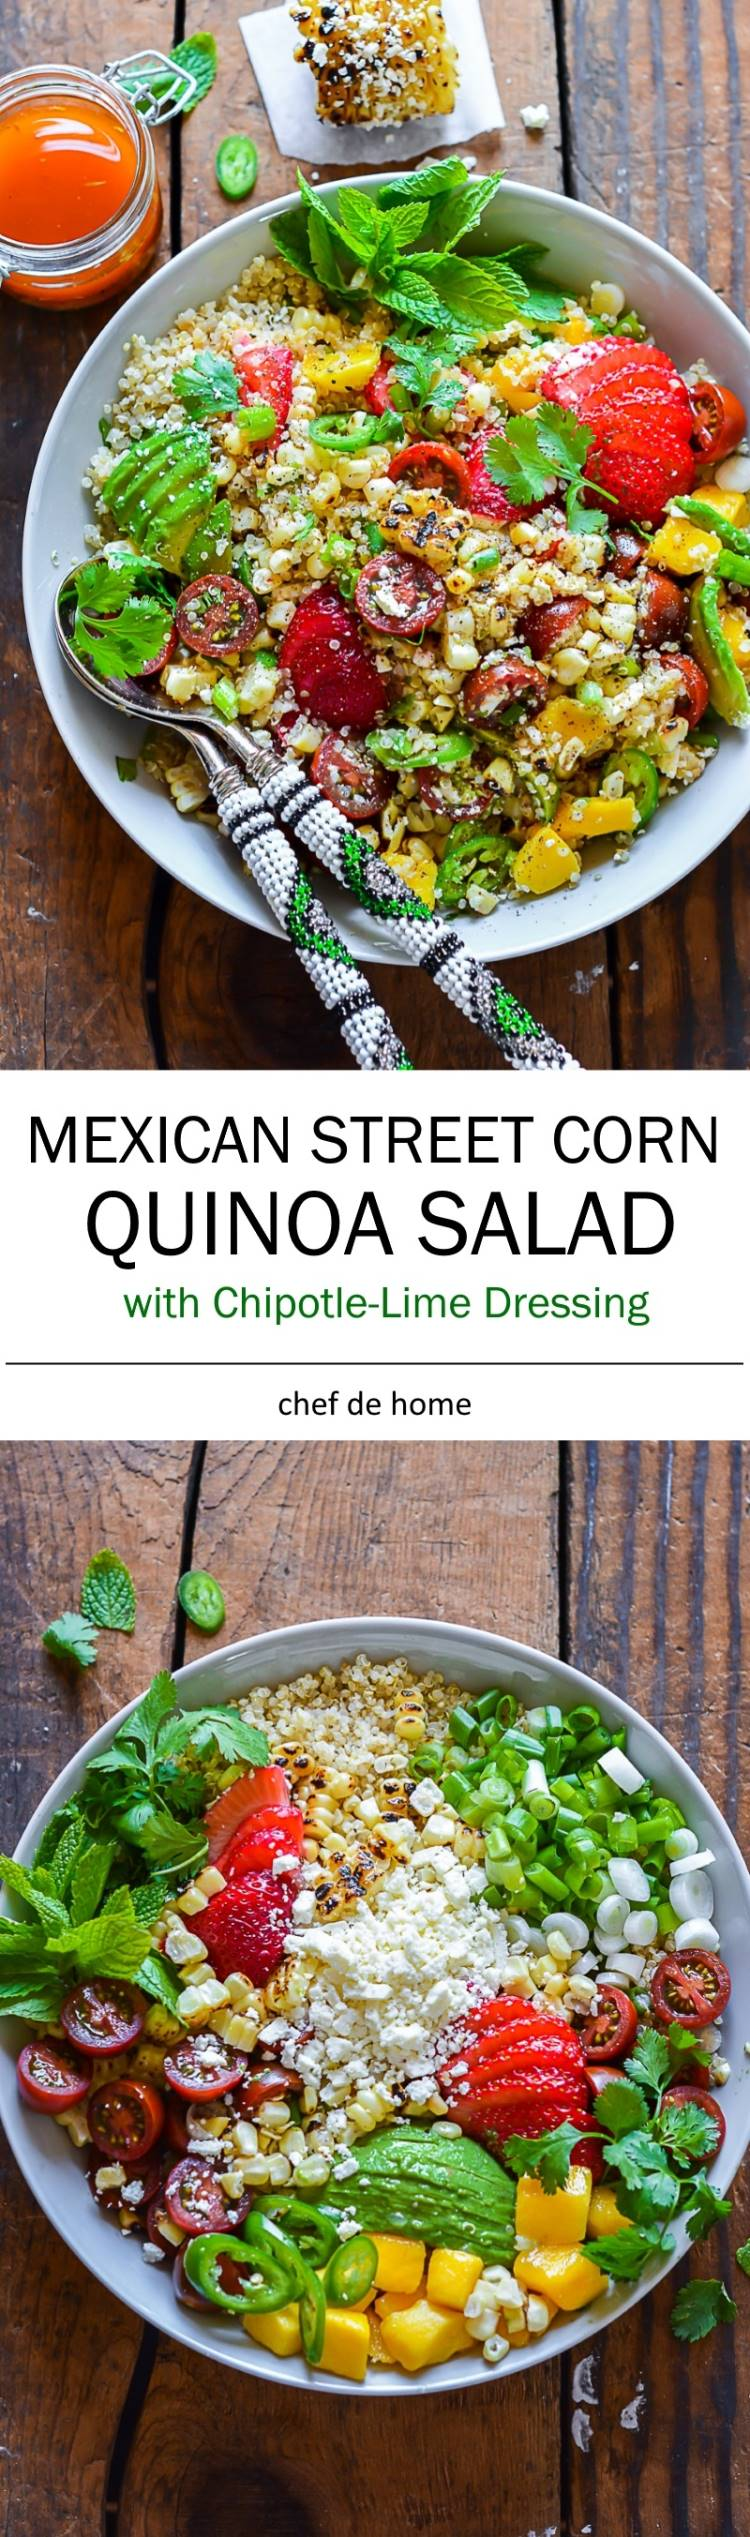 Summer Grilling at its best with Mexican Street Corn and Quinoa Salad | chefdehome.com